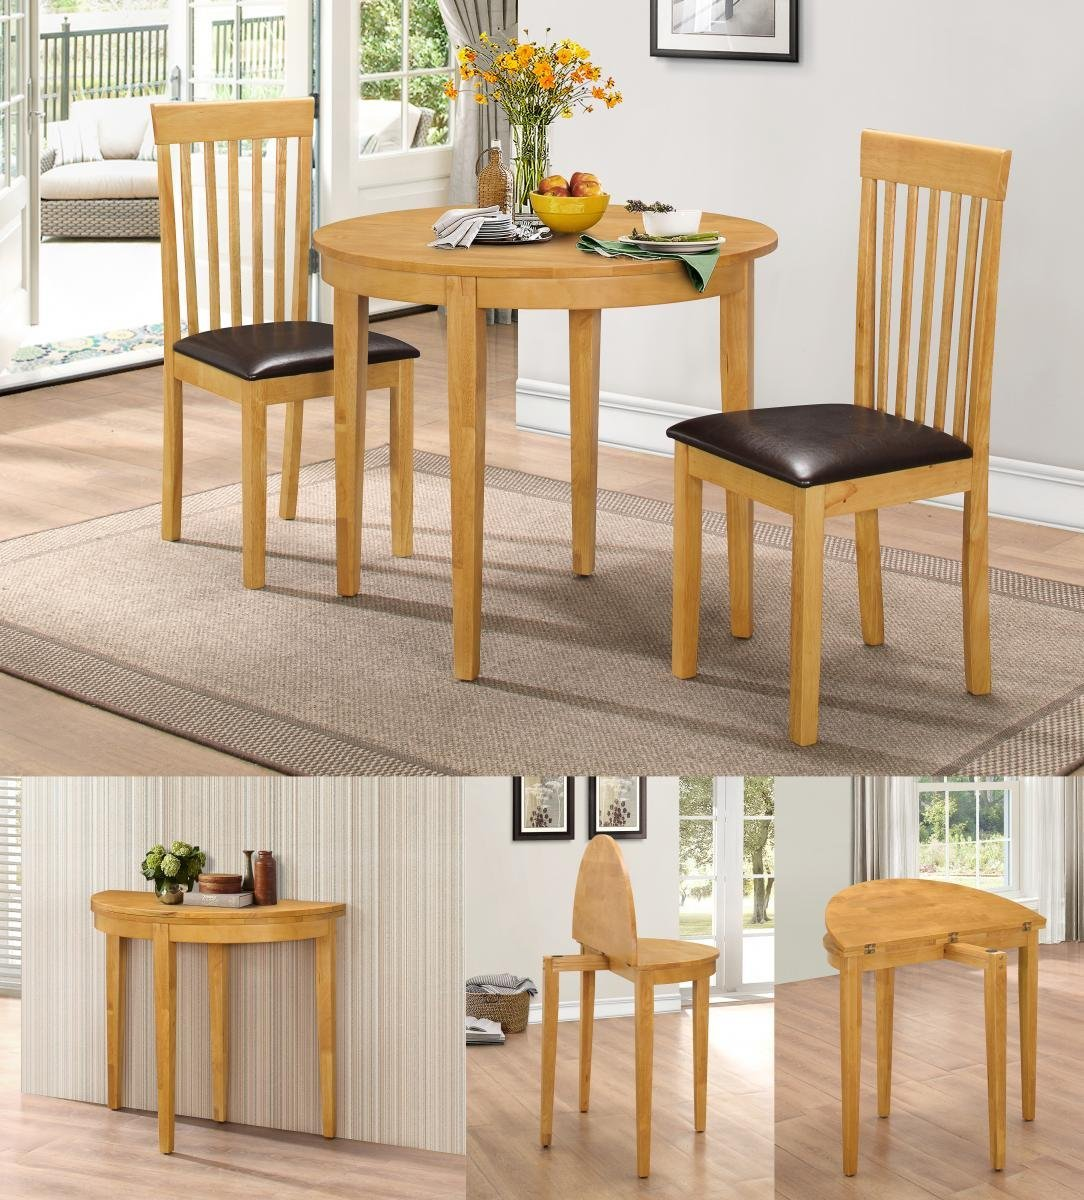 Fantastic Hgg Dining Table Set With 2 Chairs Rubberwood Furniture Small Table And 2 Chairs Kitchen Table And 2 Chairs Extending Dining Table Small Home Interior And Landscaping Mentranervesignezvosmurscom